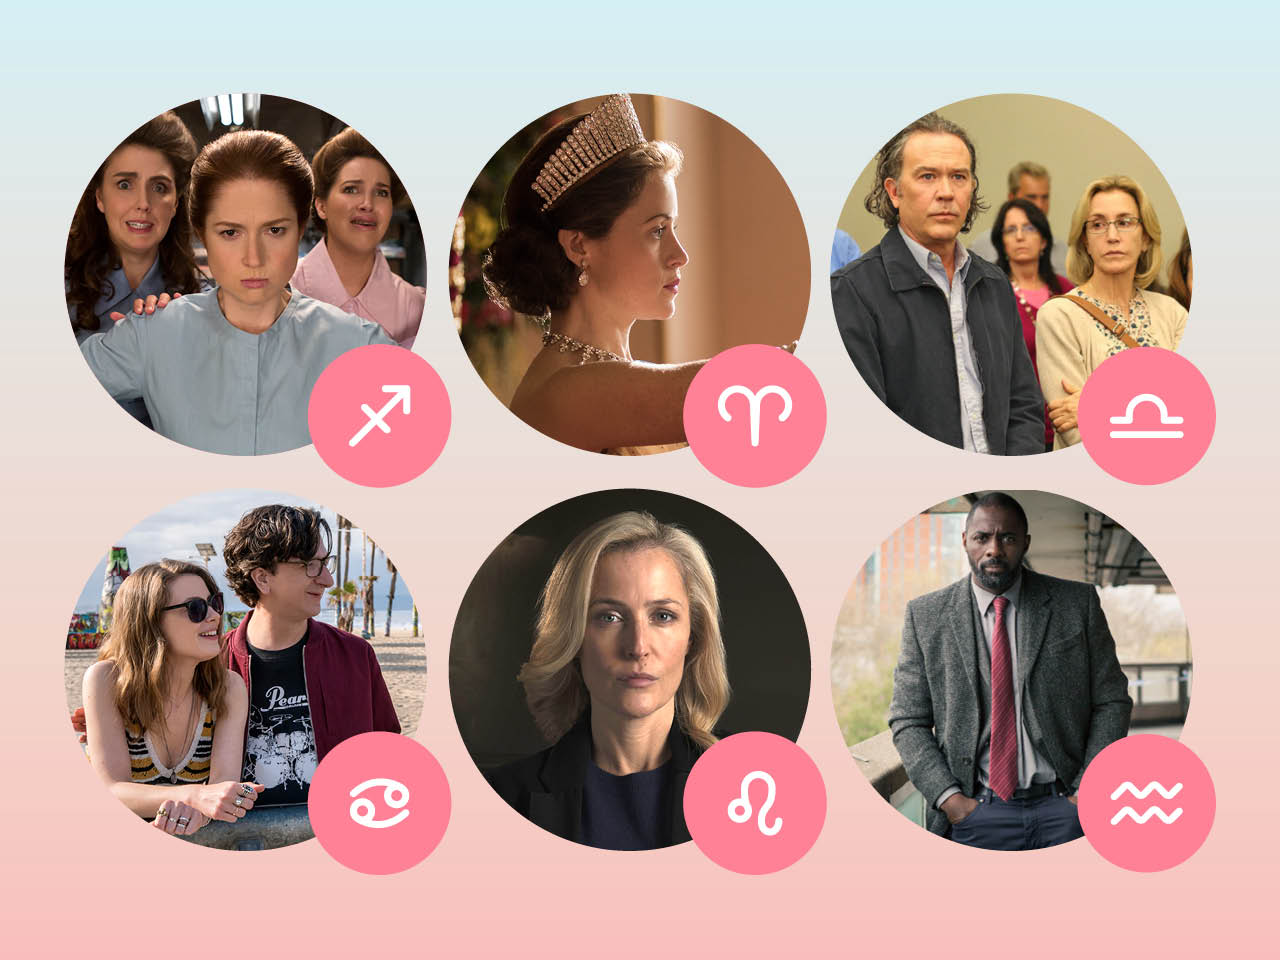 What To Watch On Netflix Tonight, According To Your Zodiac Sign